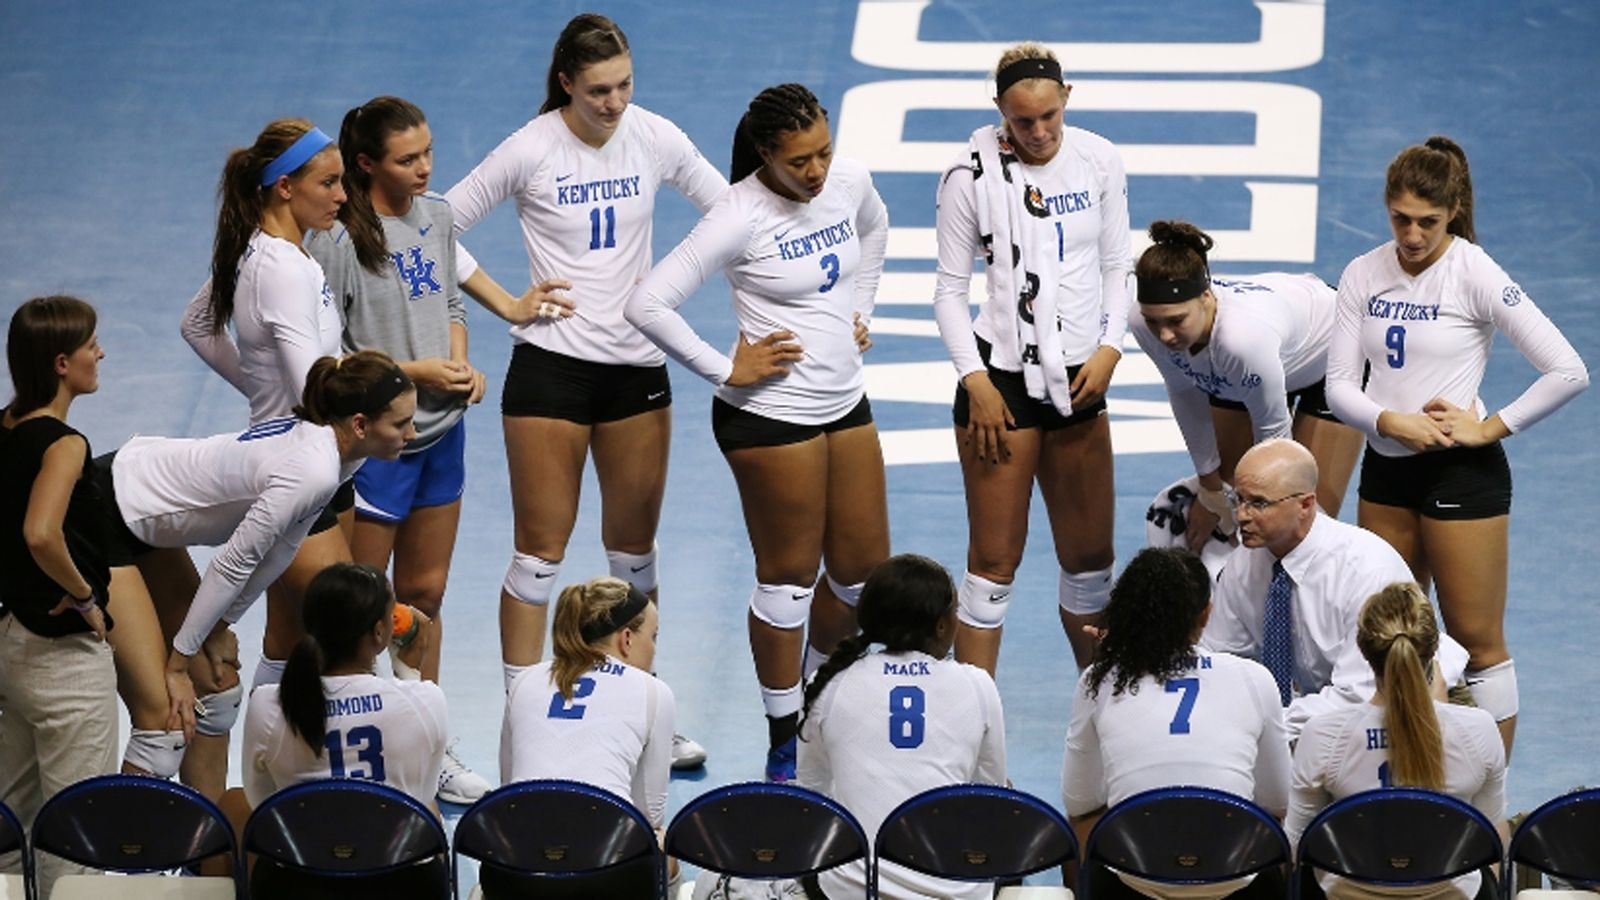 The Wildcats Shut Out The Billikens To Improve To 5 4 On The Season Volleyball News Volleyball Players Kentucky